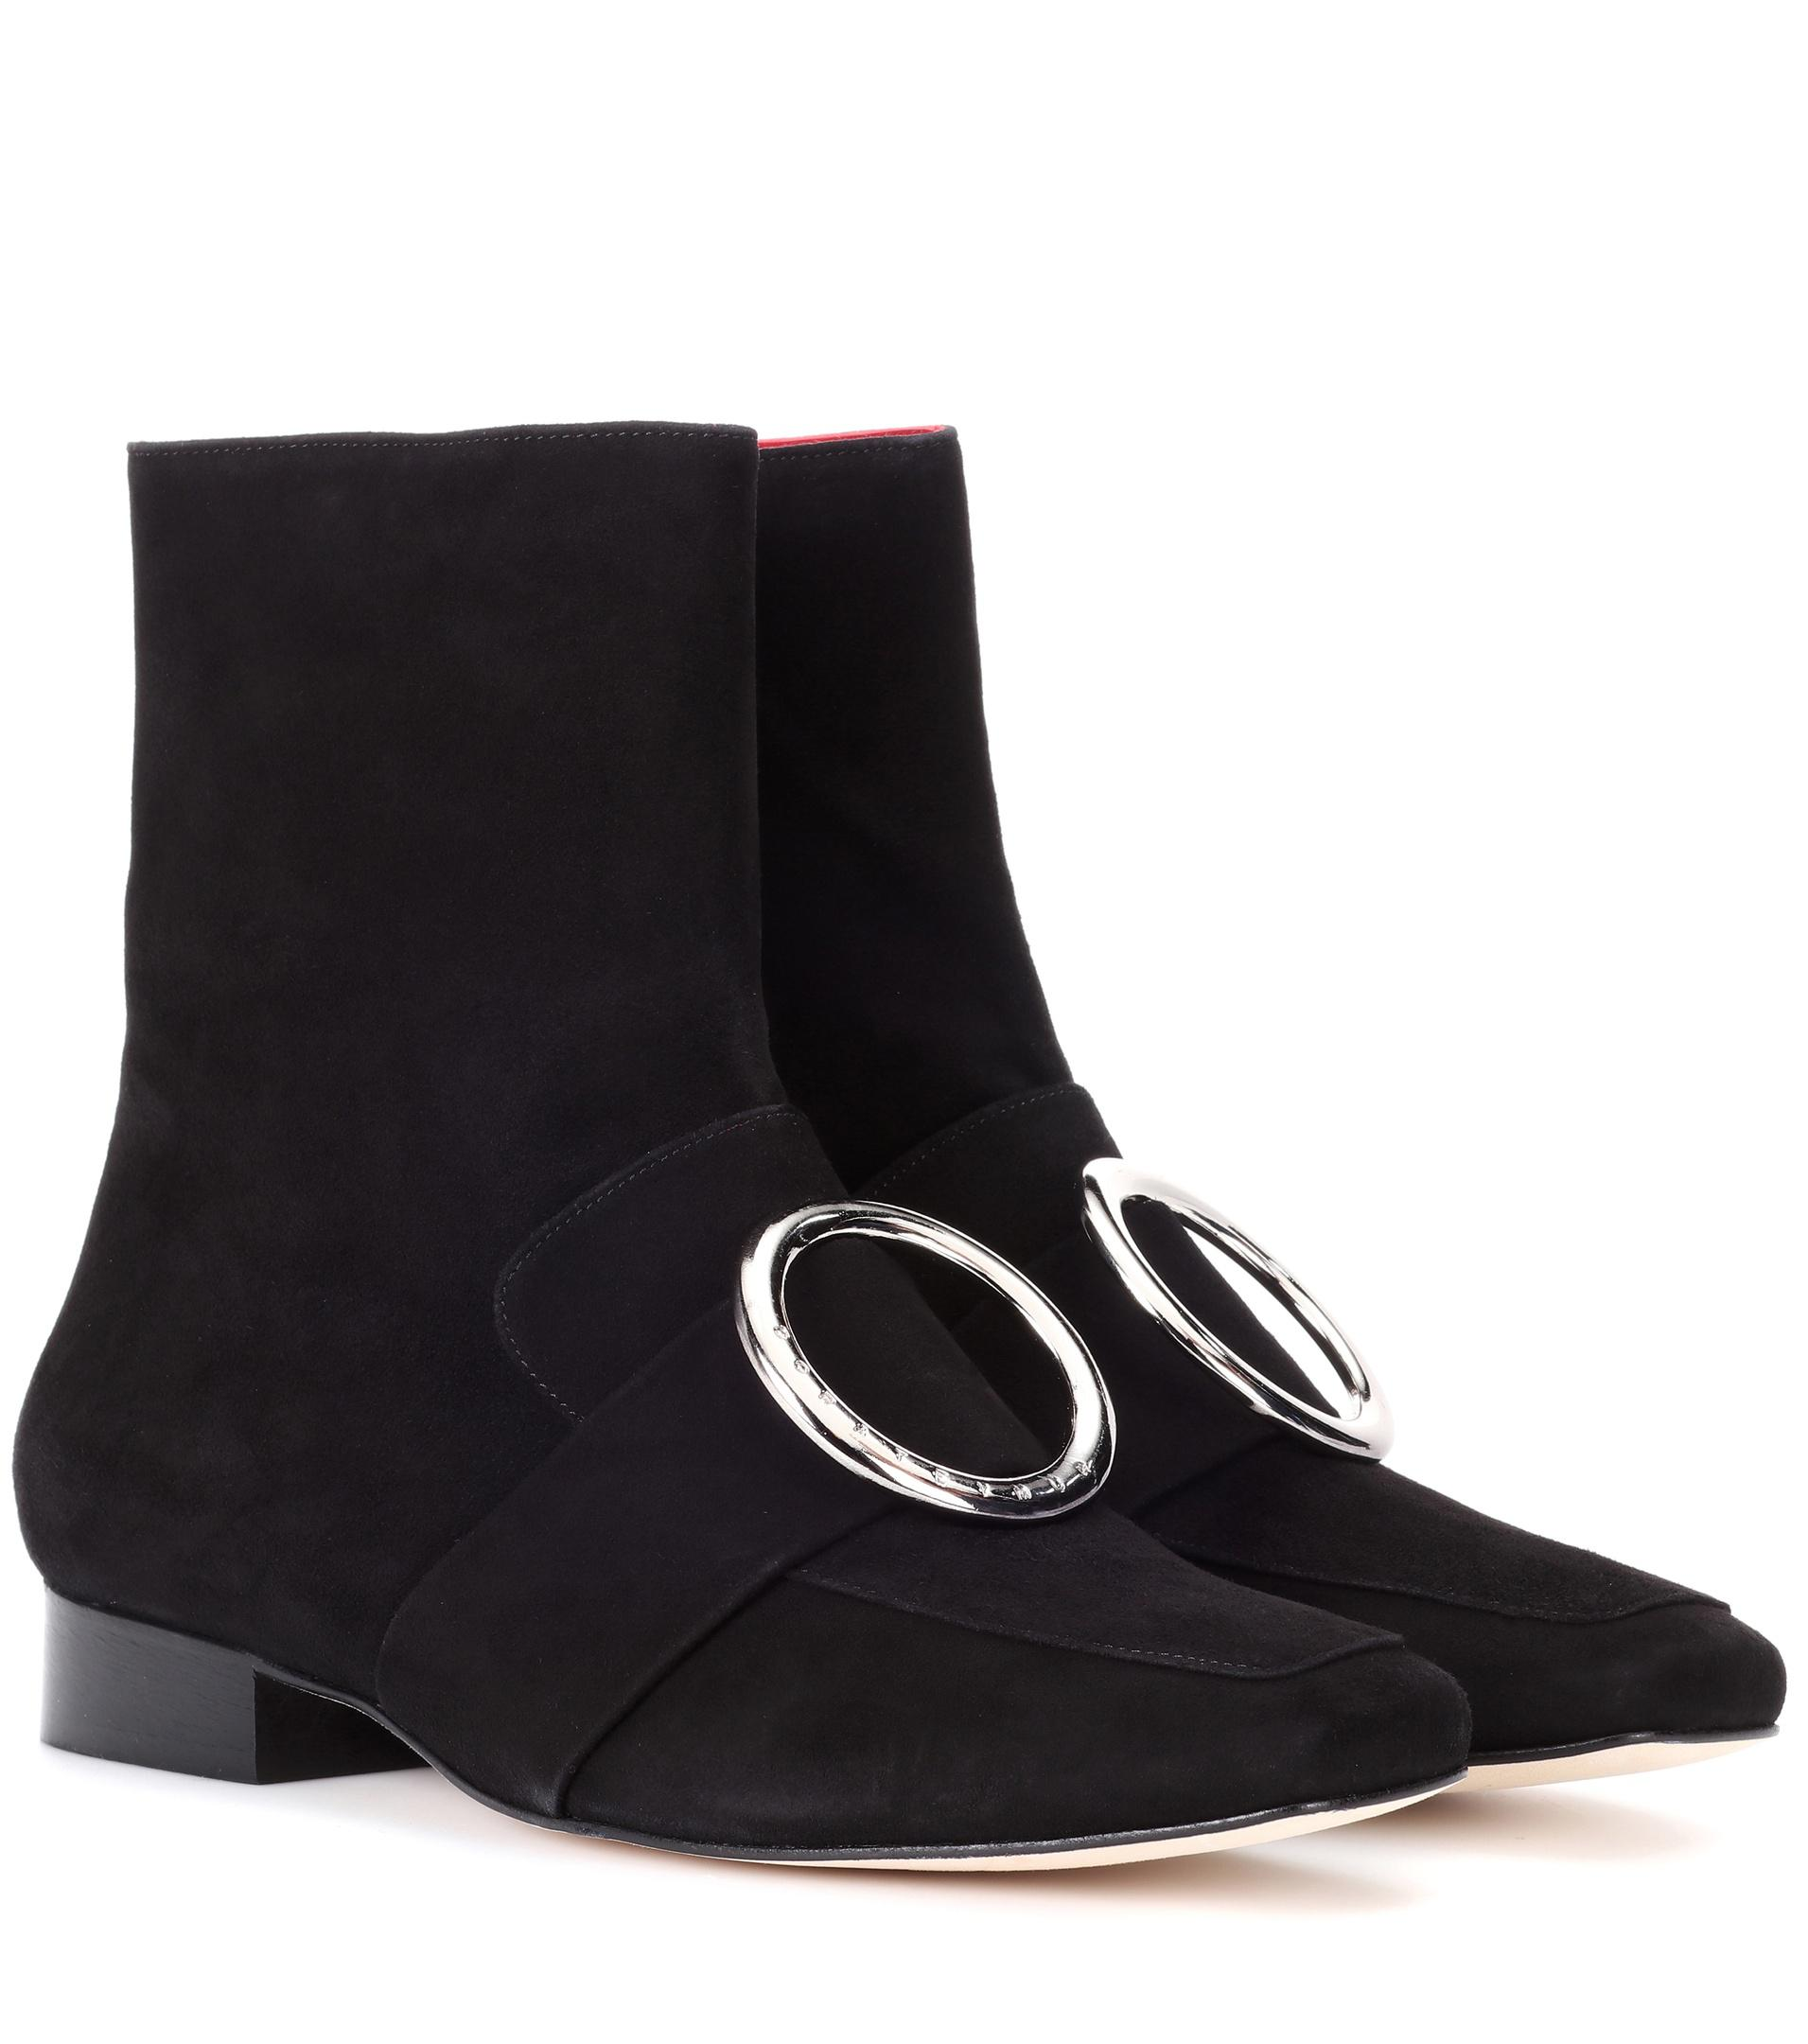 DORATEYMUR Suede Biturbo Boots Cheap Sale Release Dates Great Deals Cheap Price Outlet Good Selling Low Price Sale Discount Outlet Locations N2hUU